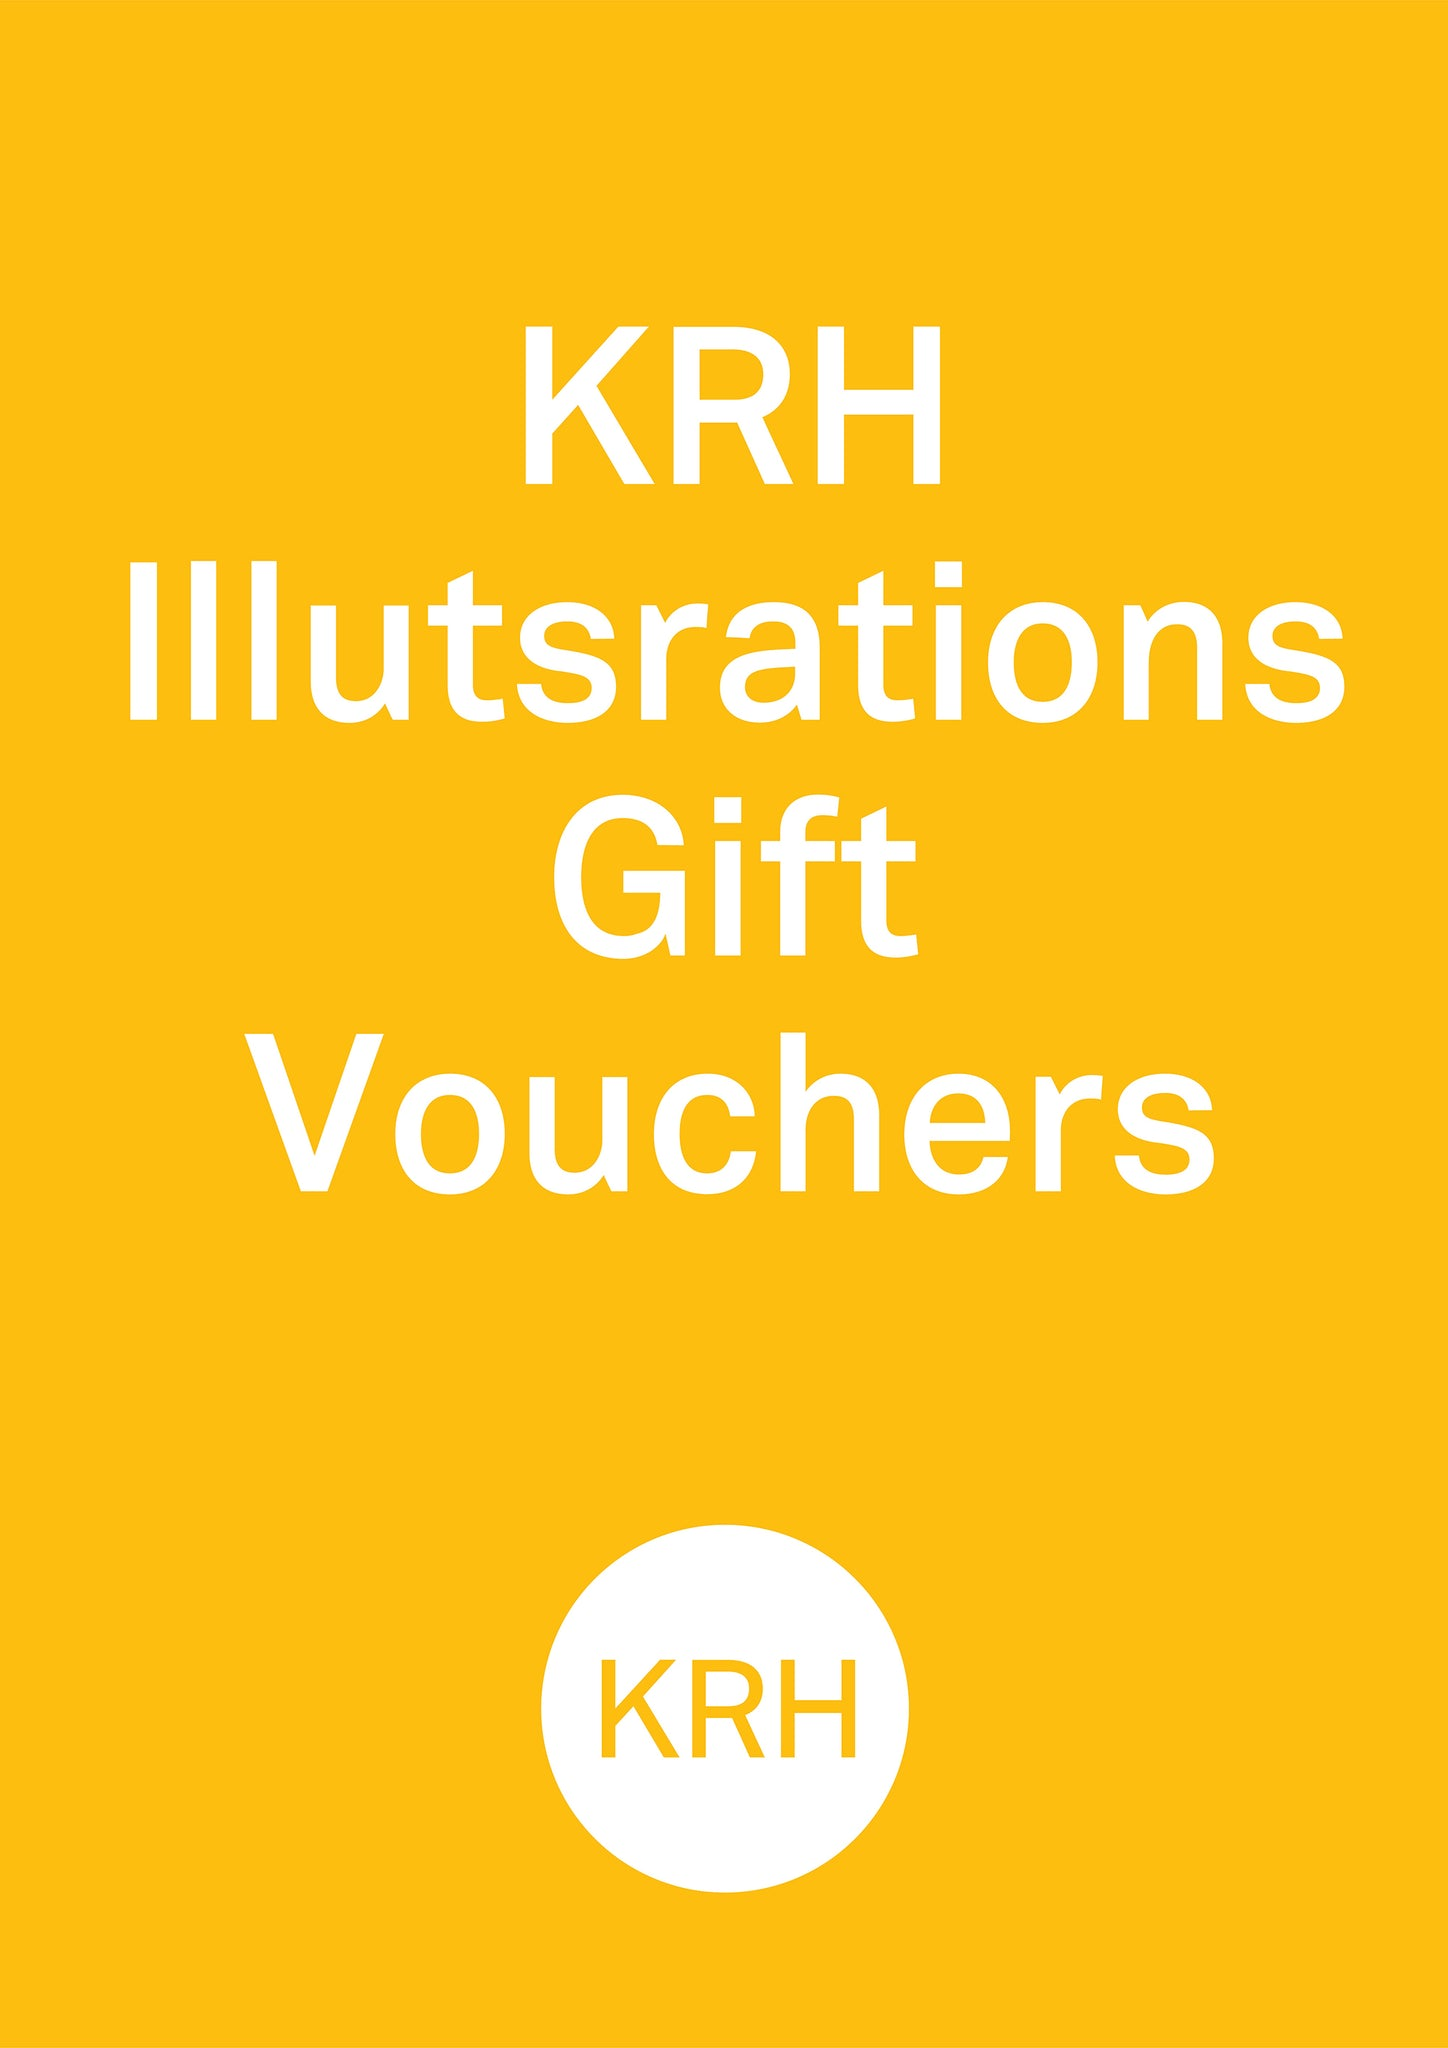 KRH Illustrates Gift Card